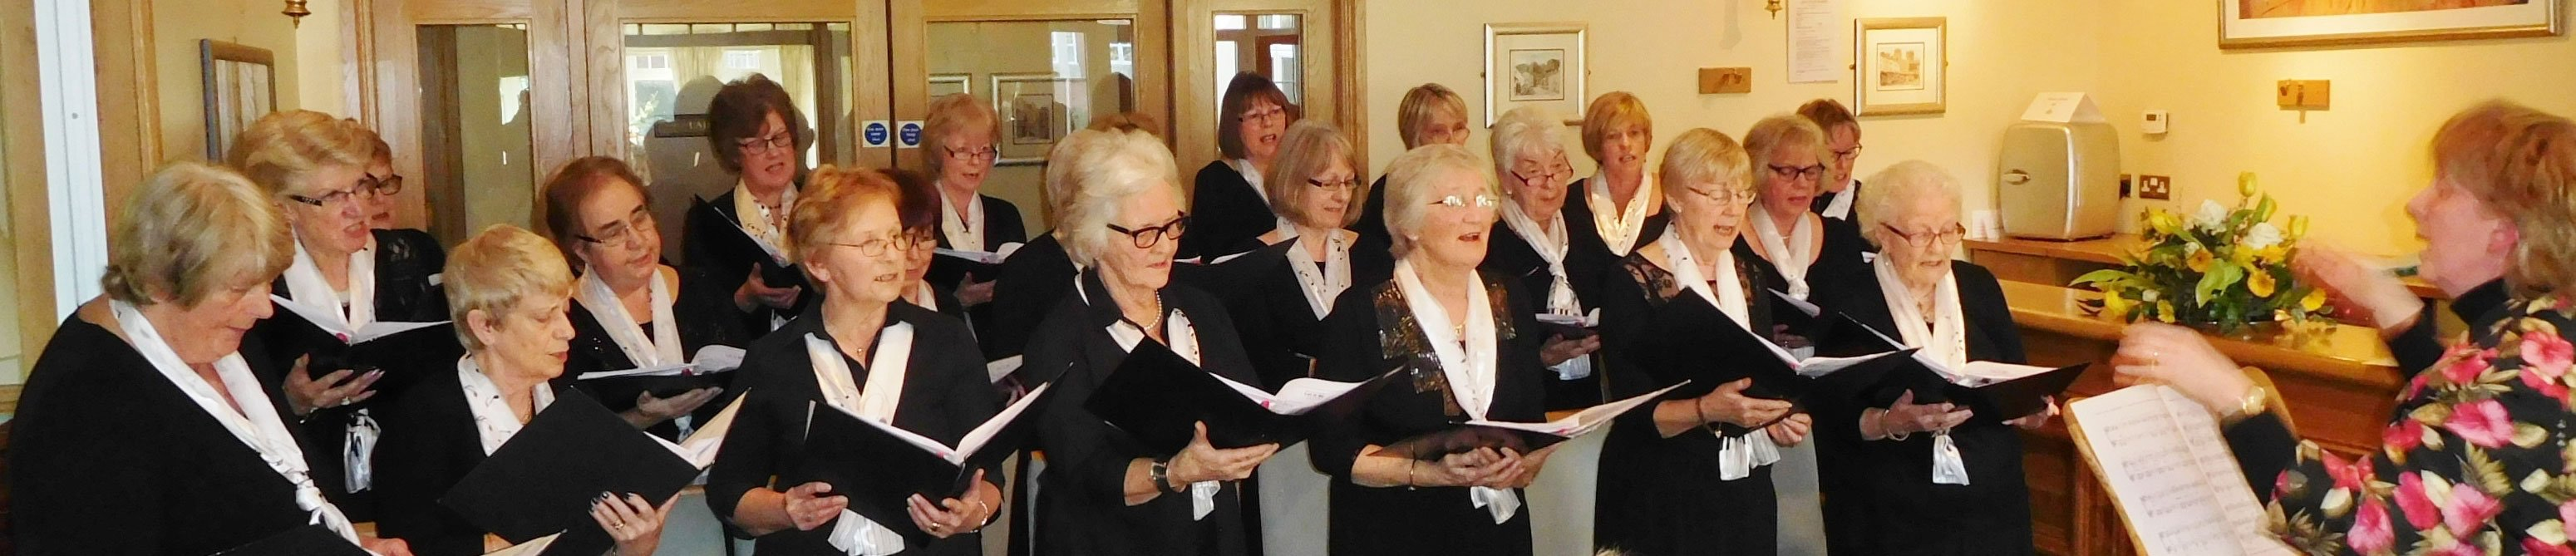 New Horizon Singers Blagdon Village